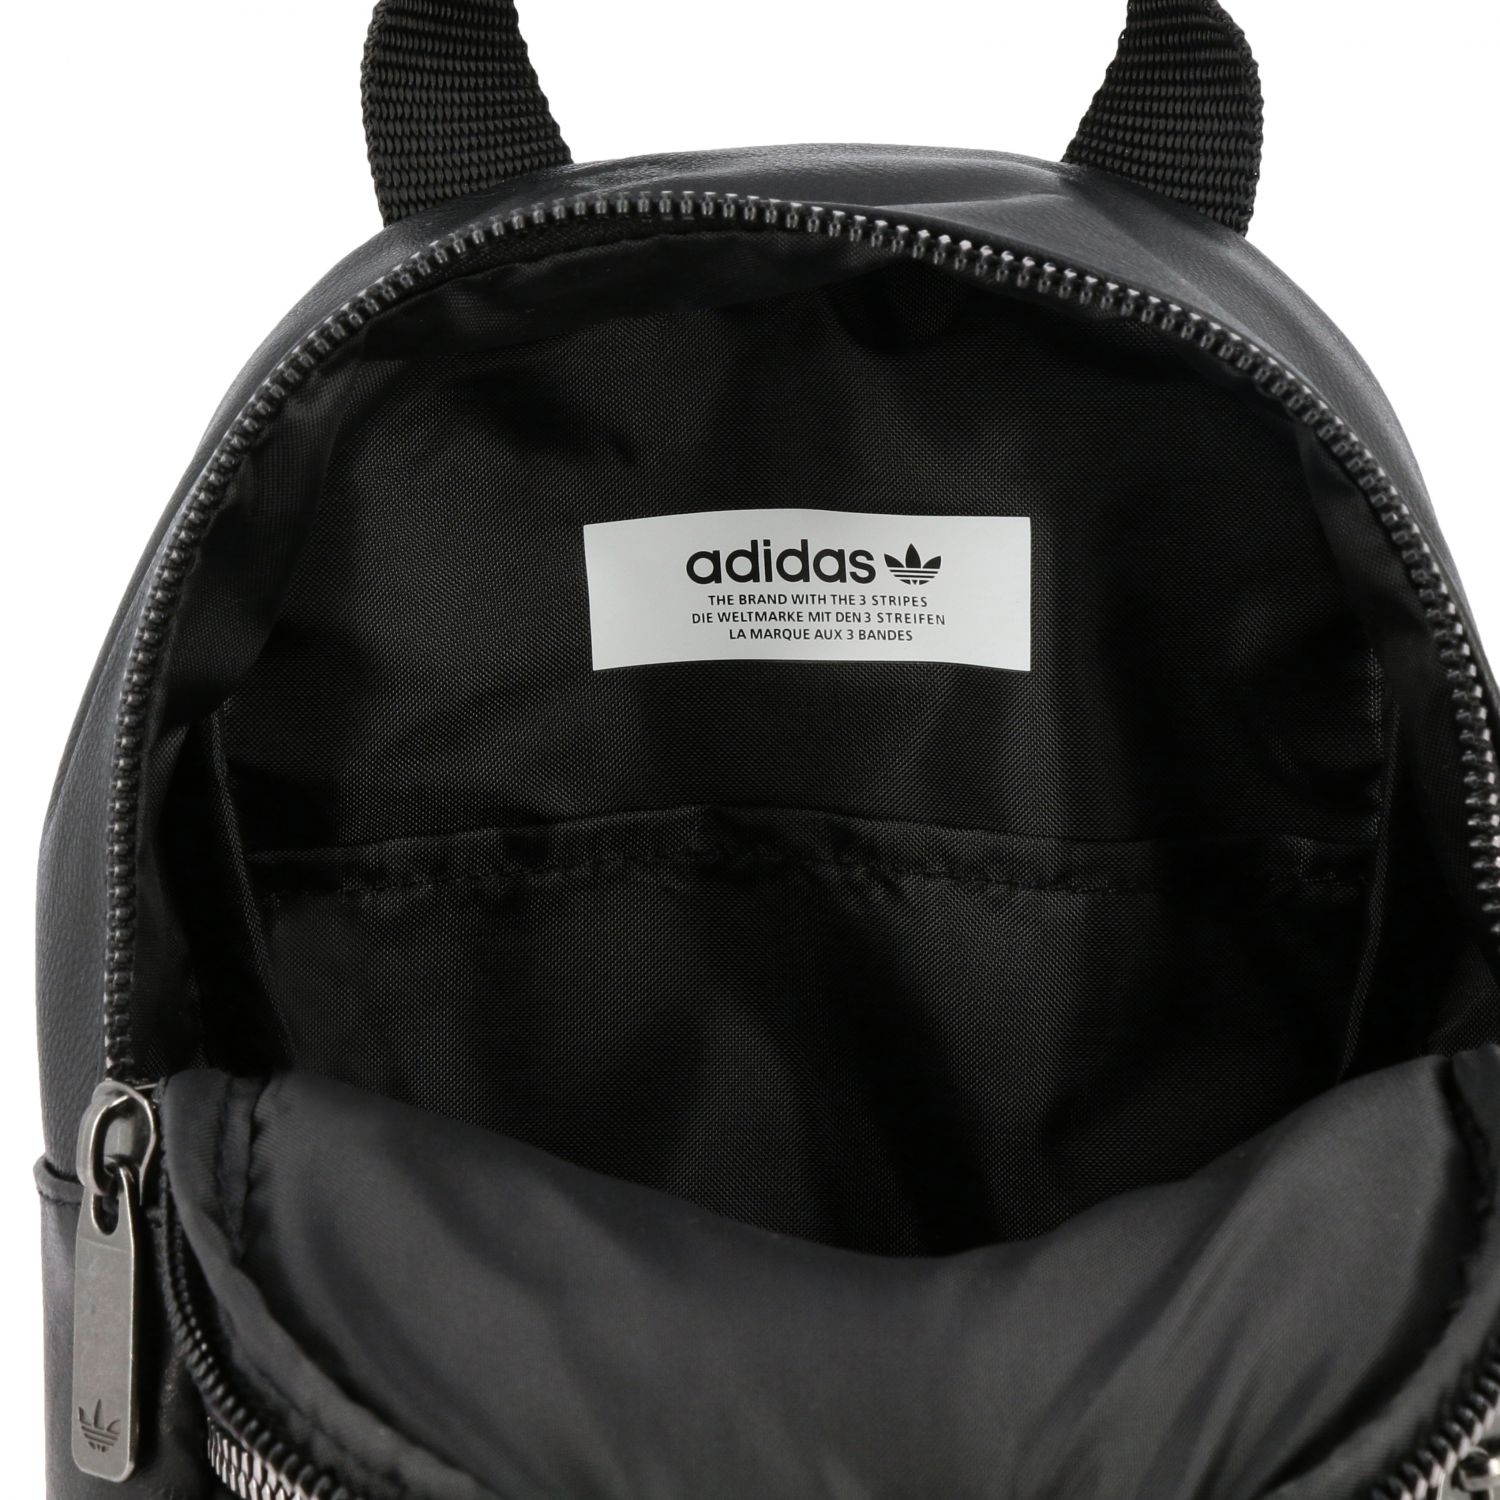 Clutch Adidas Originals: Clutch kids Adidas Originals black 5